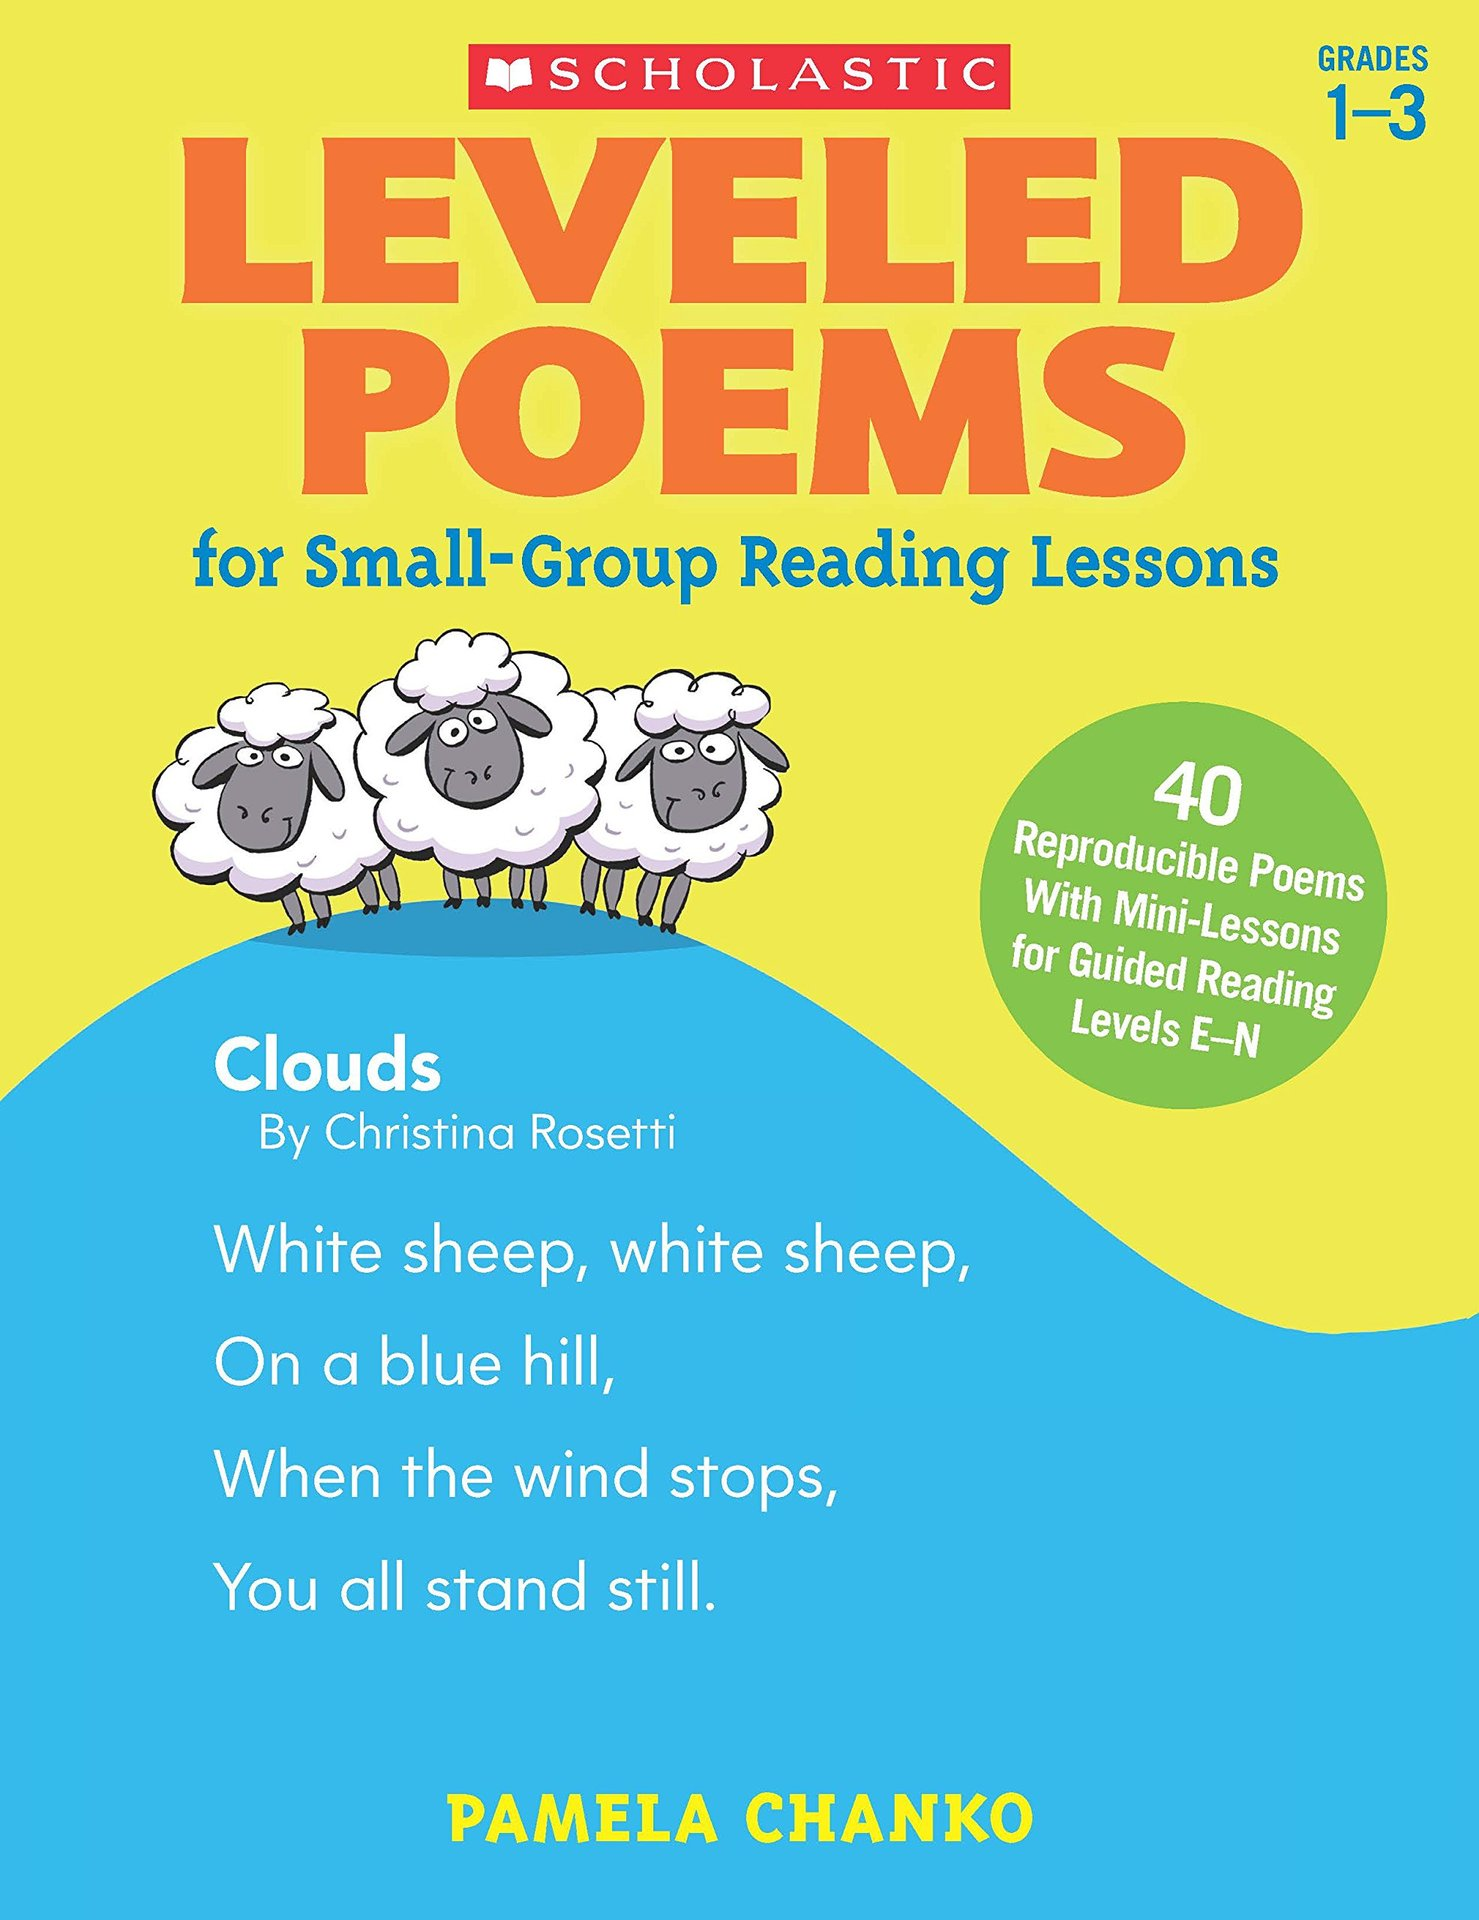 SC 0545593632 LEV. POEMS SMALL GROUP G1-3